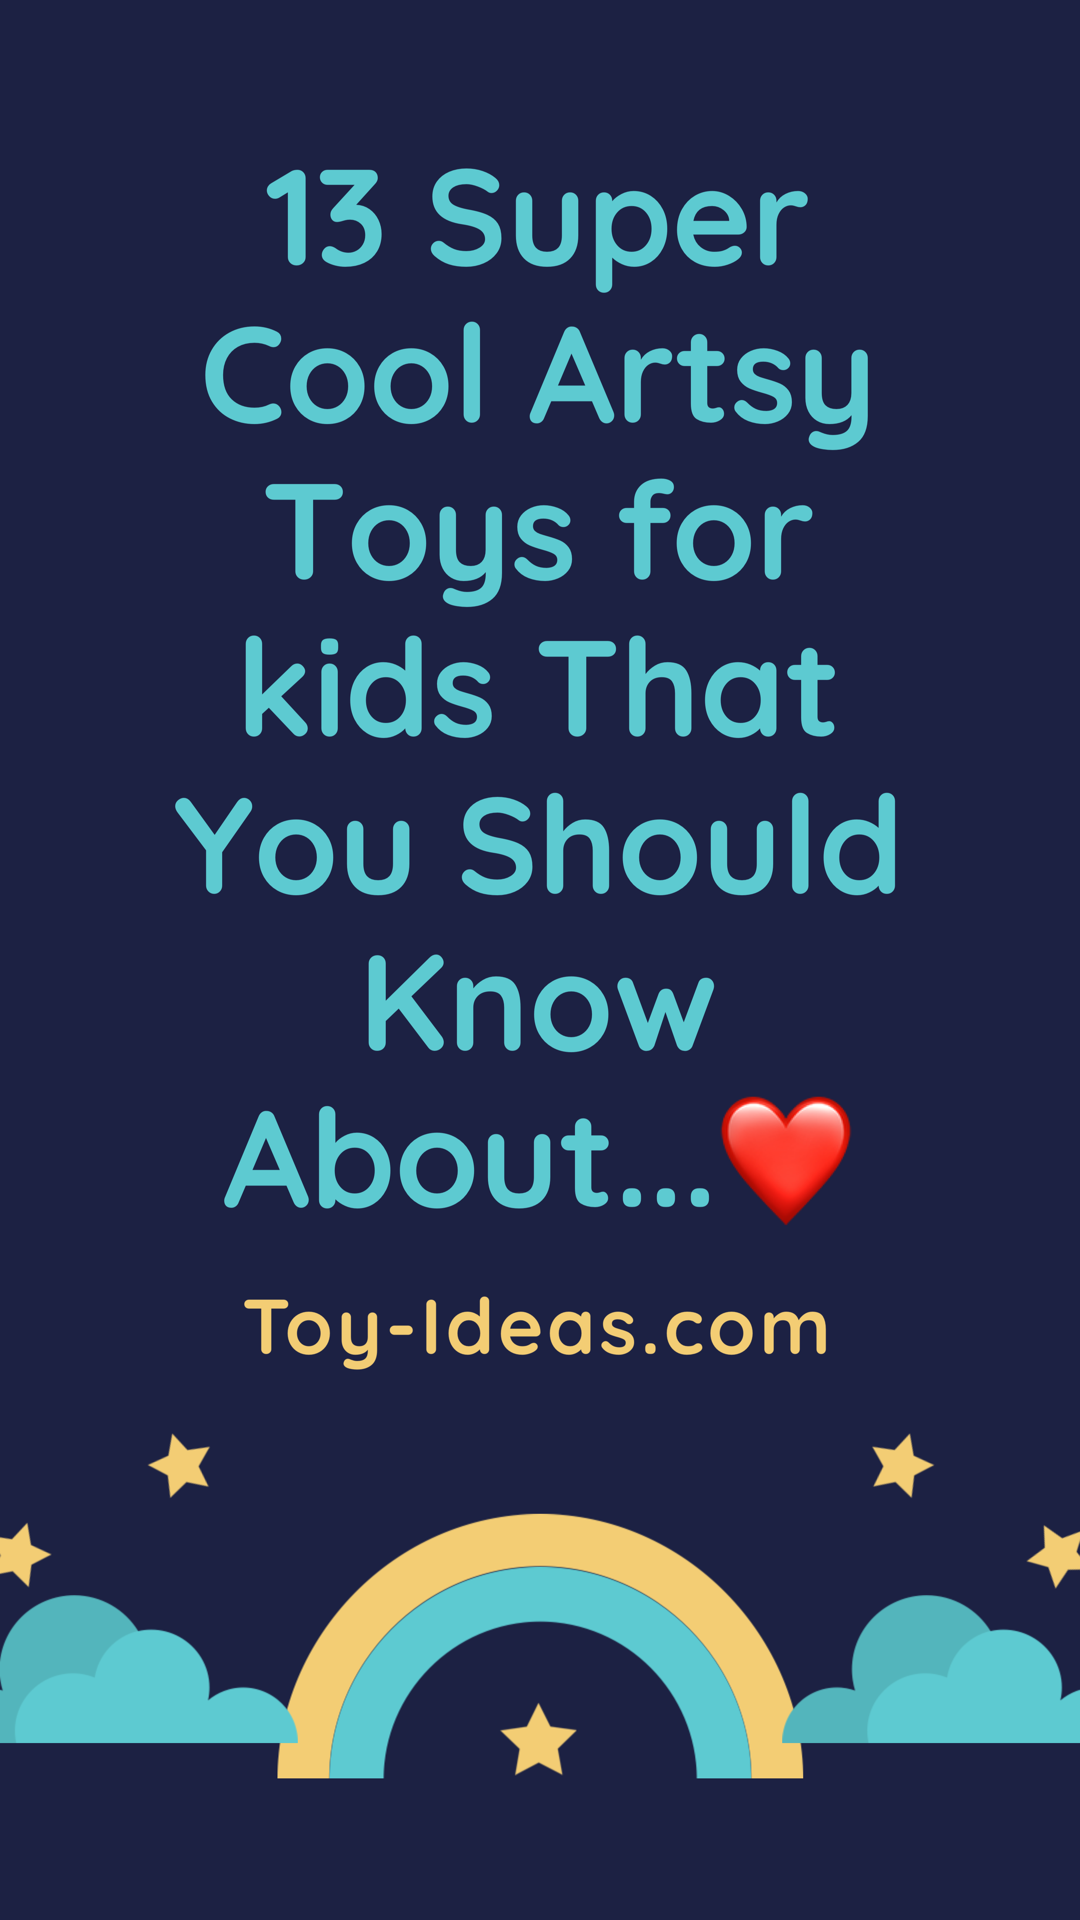 13 Super Cool Artsy Toys That You Should Know About...❤️.PNG